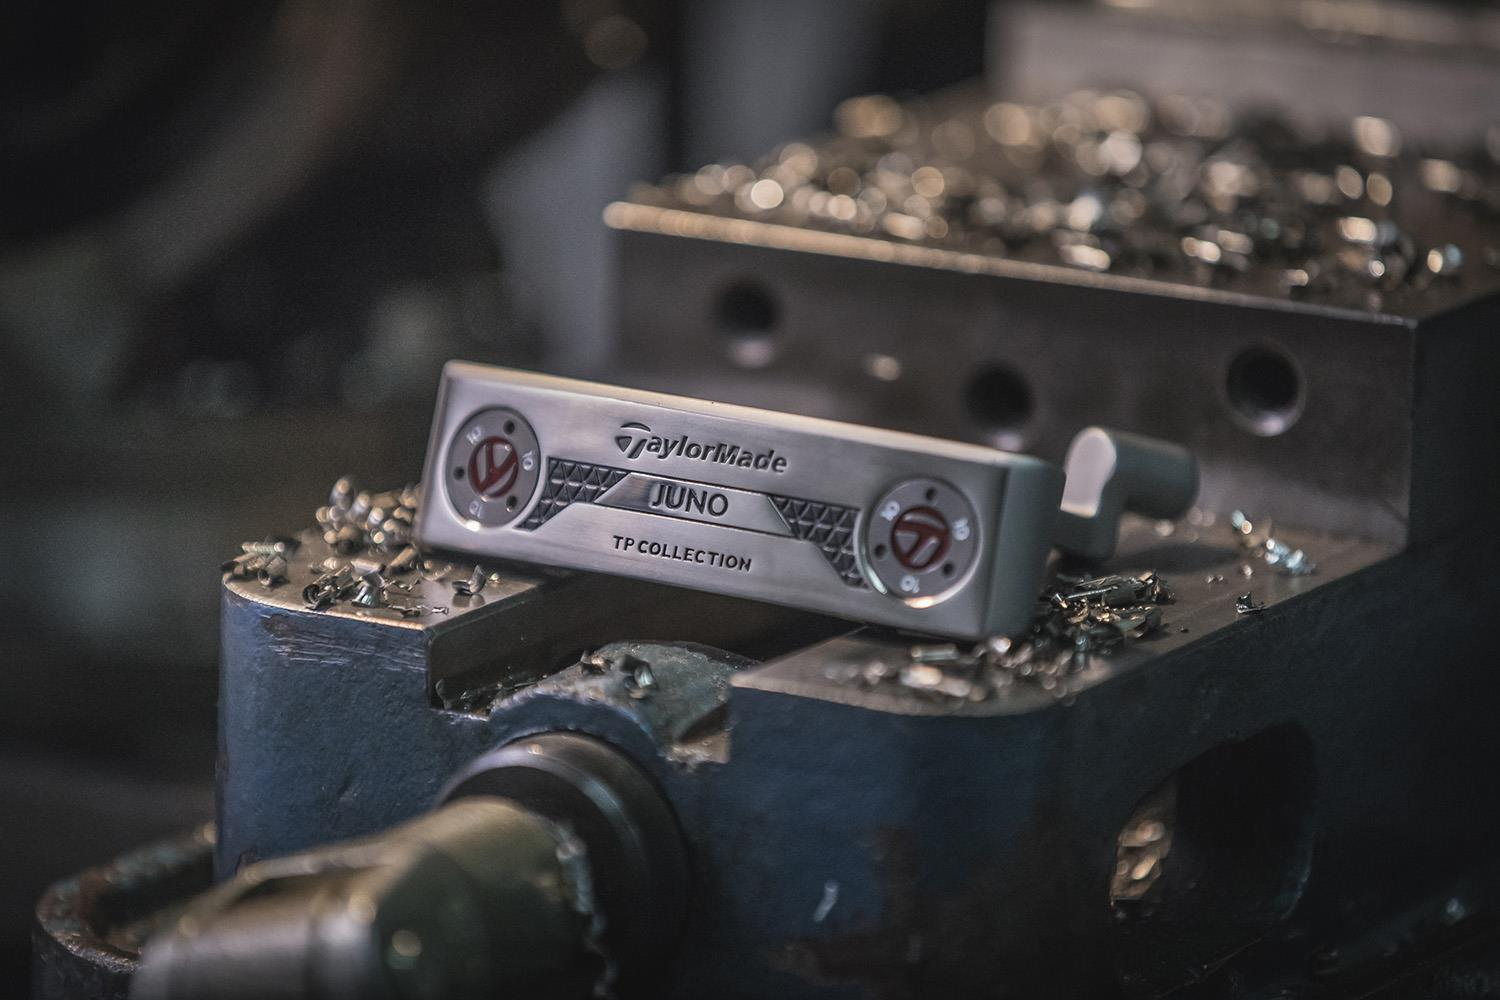 Juno and Soto are classically designed blade putters with heel-toe weighting for optimized balance, control and feel.